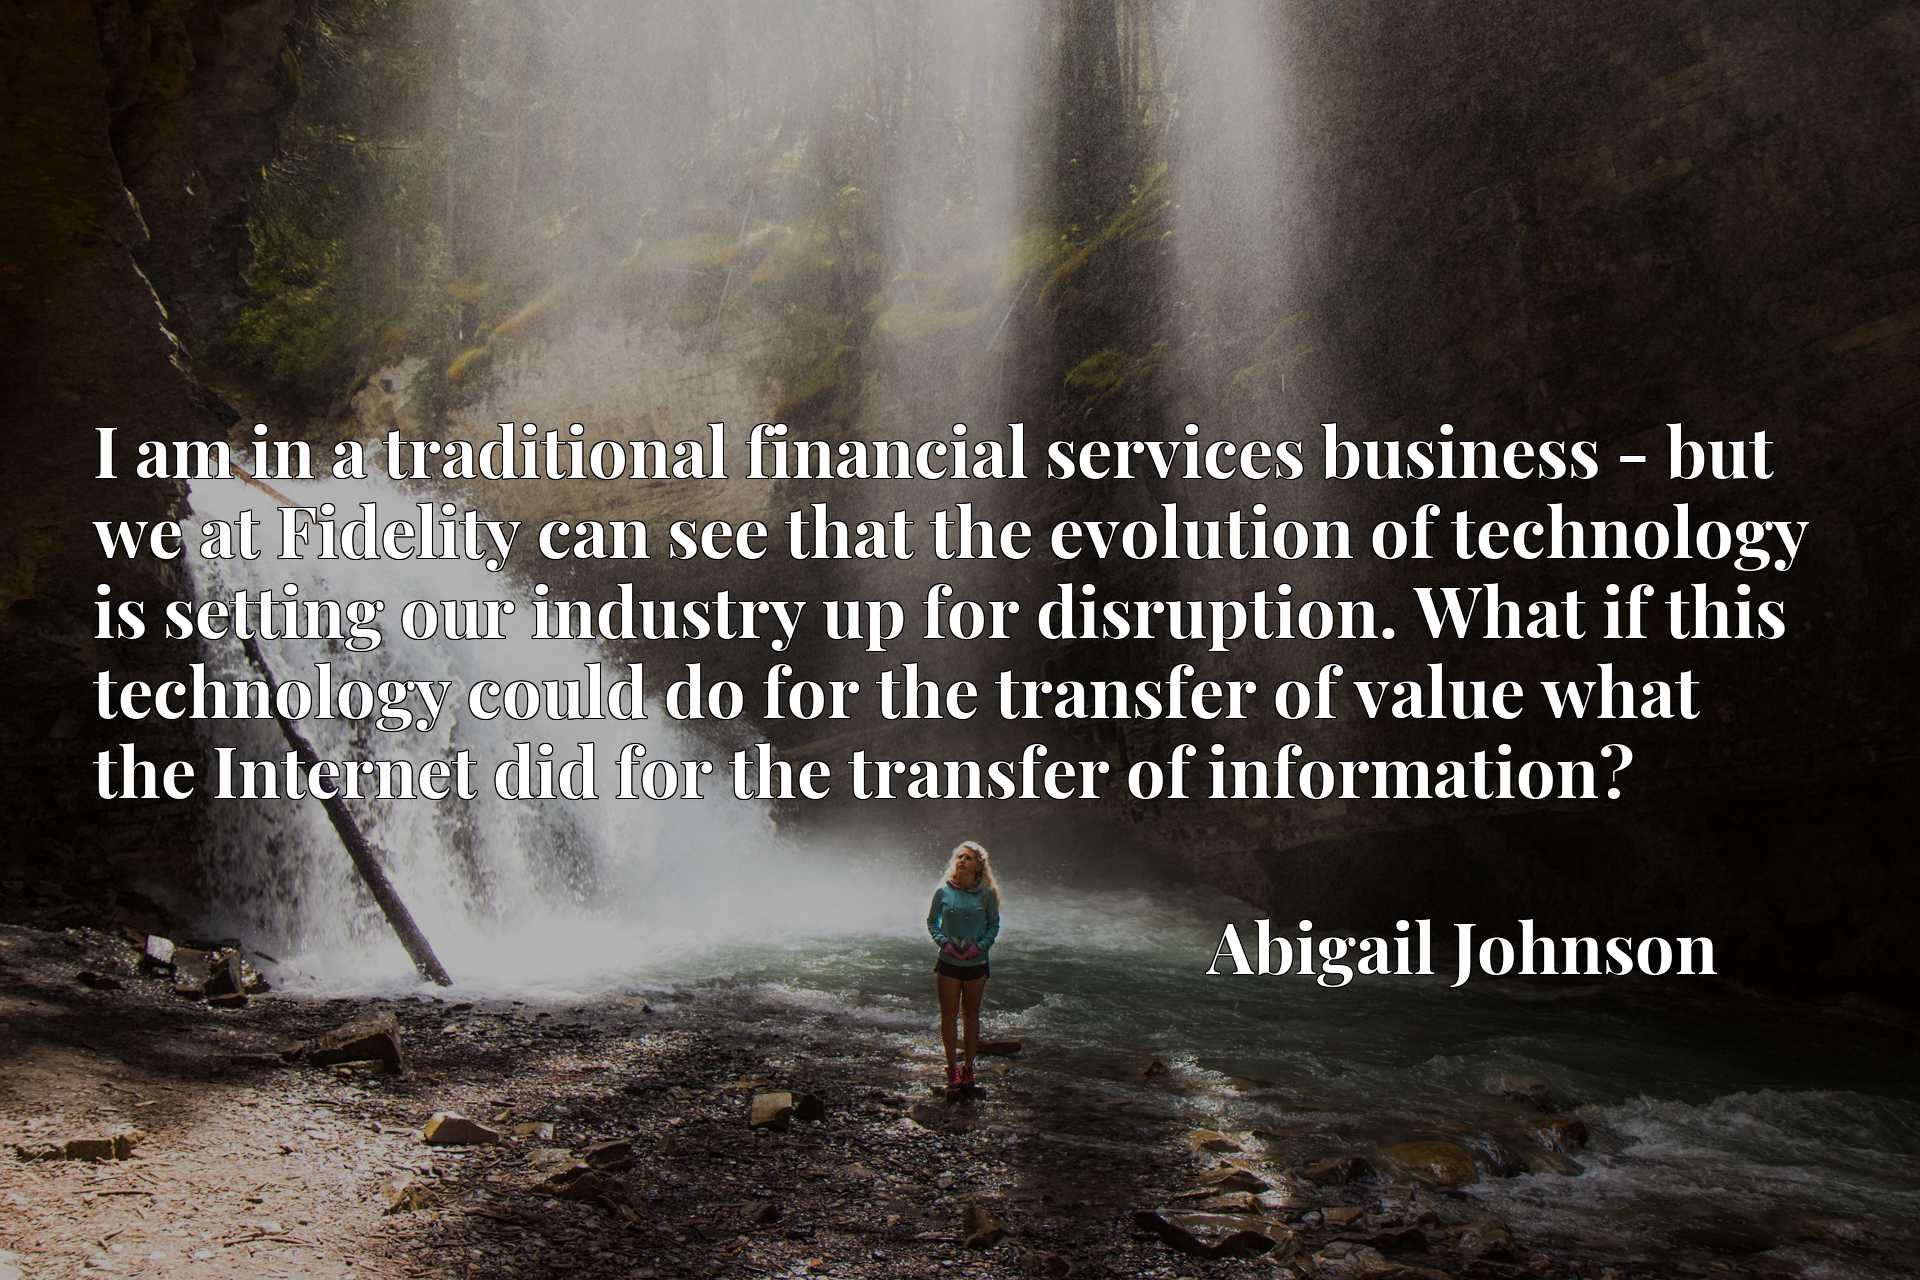 I am in a traditional financial services business - but we at Fidelity can see that the evolution of technology is setting our industry up for disruption. What if this technology could do for the transfer of value what the Internet did for the transfer of information?